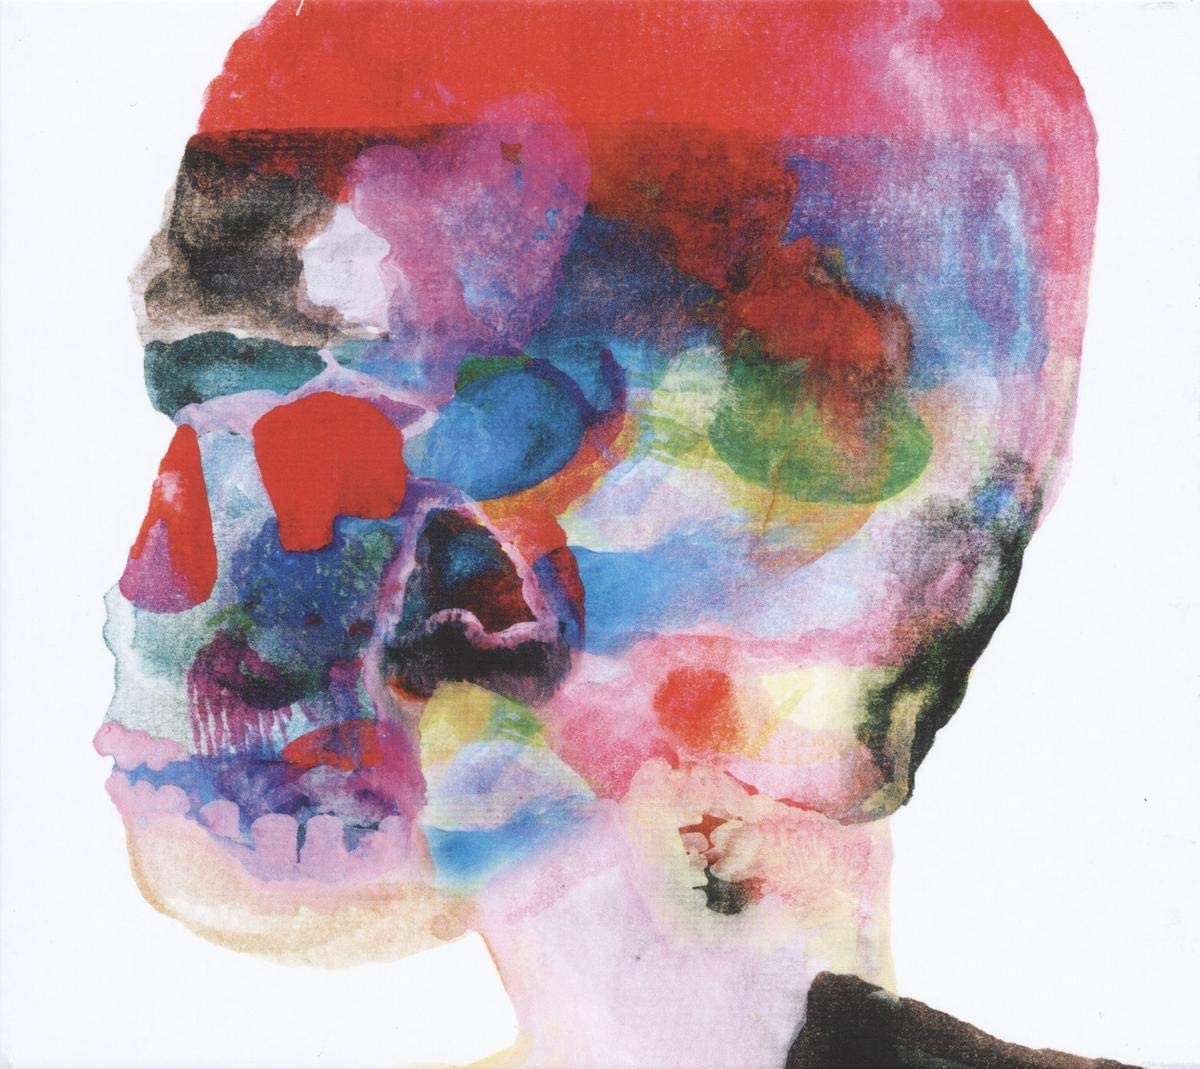 Spoon/Hot Thoughts - Limited Red Vinyl [LP]